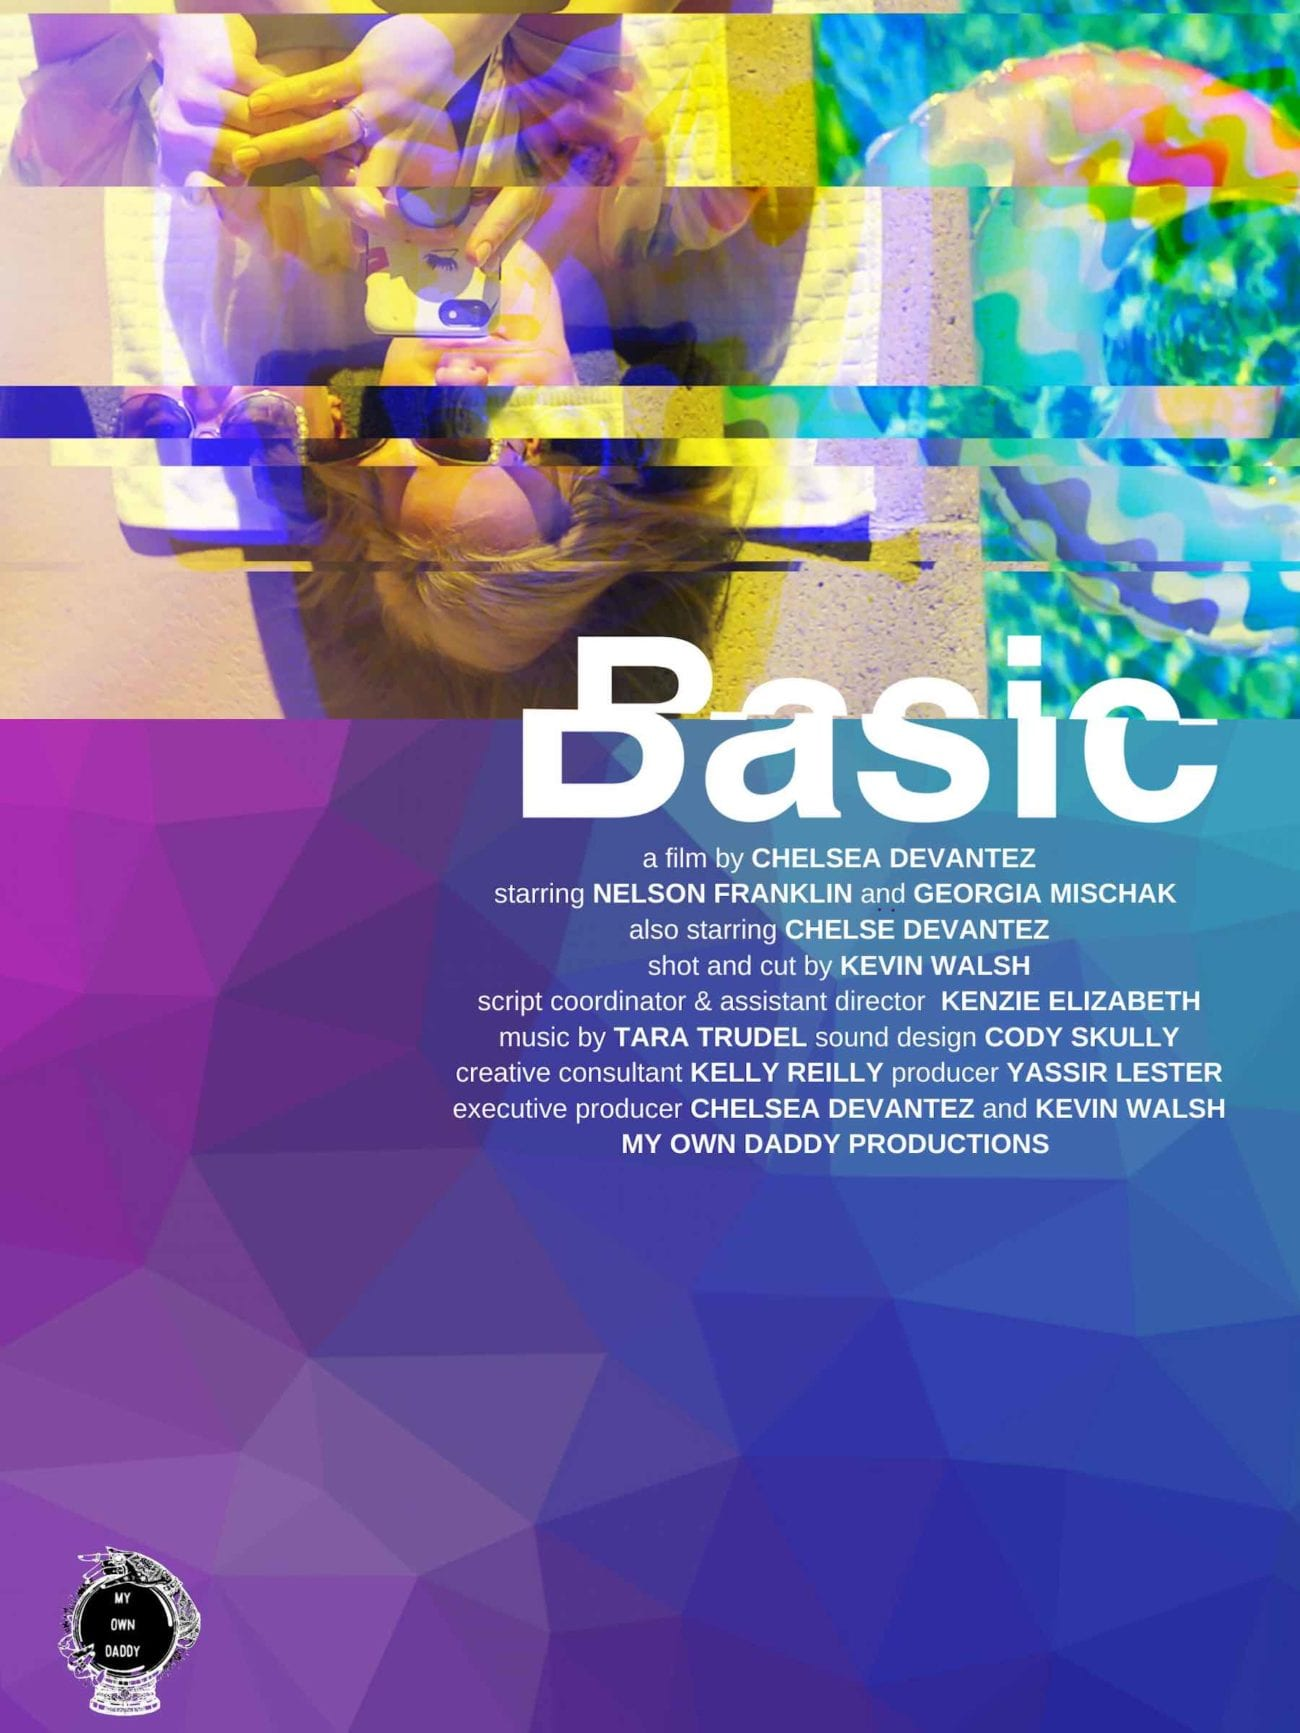 """Filmmaker Chelsea Devantez is here to speak to """"the insecure lil ho in all of us"""" and it's a message we need. Here's what we know about 'Basic'."""